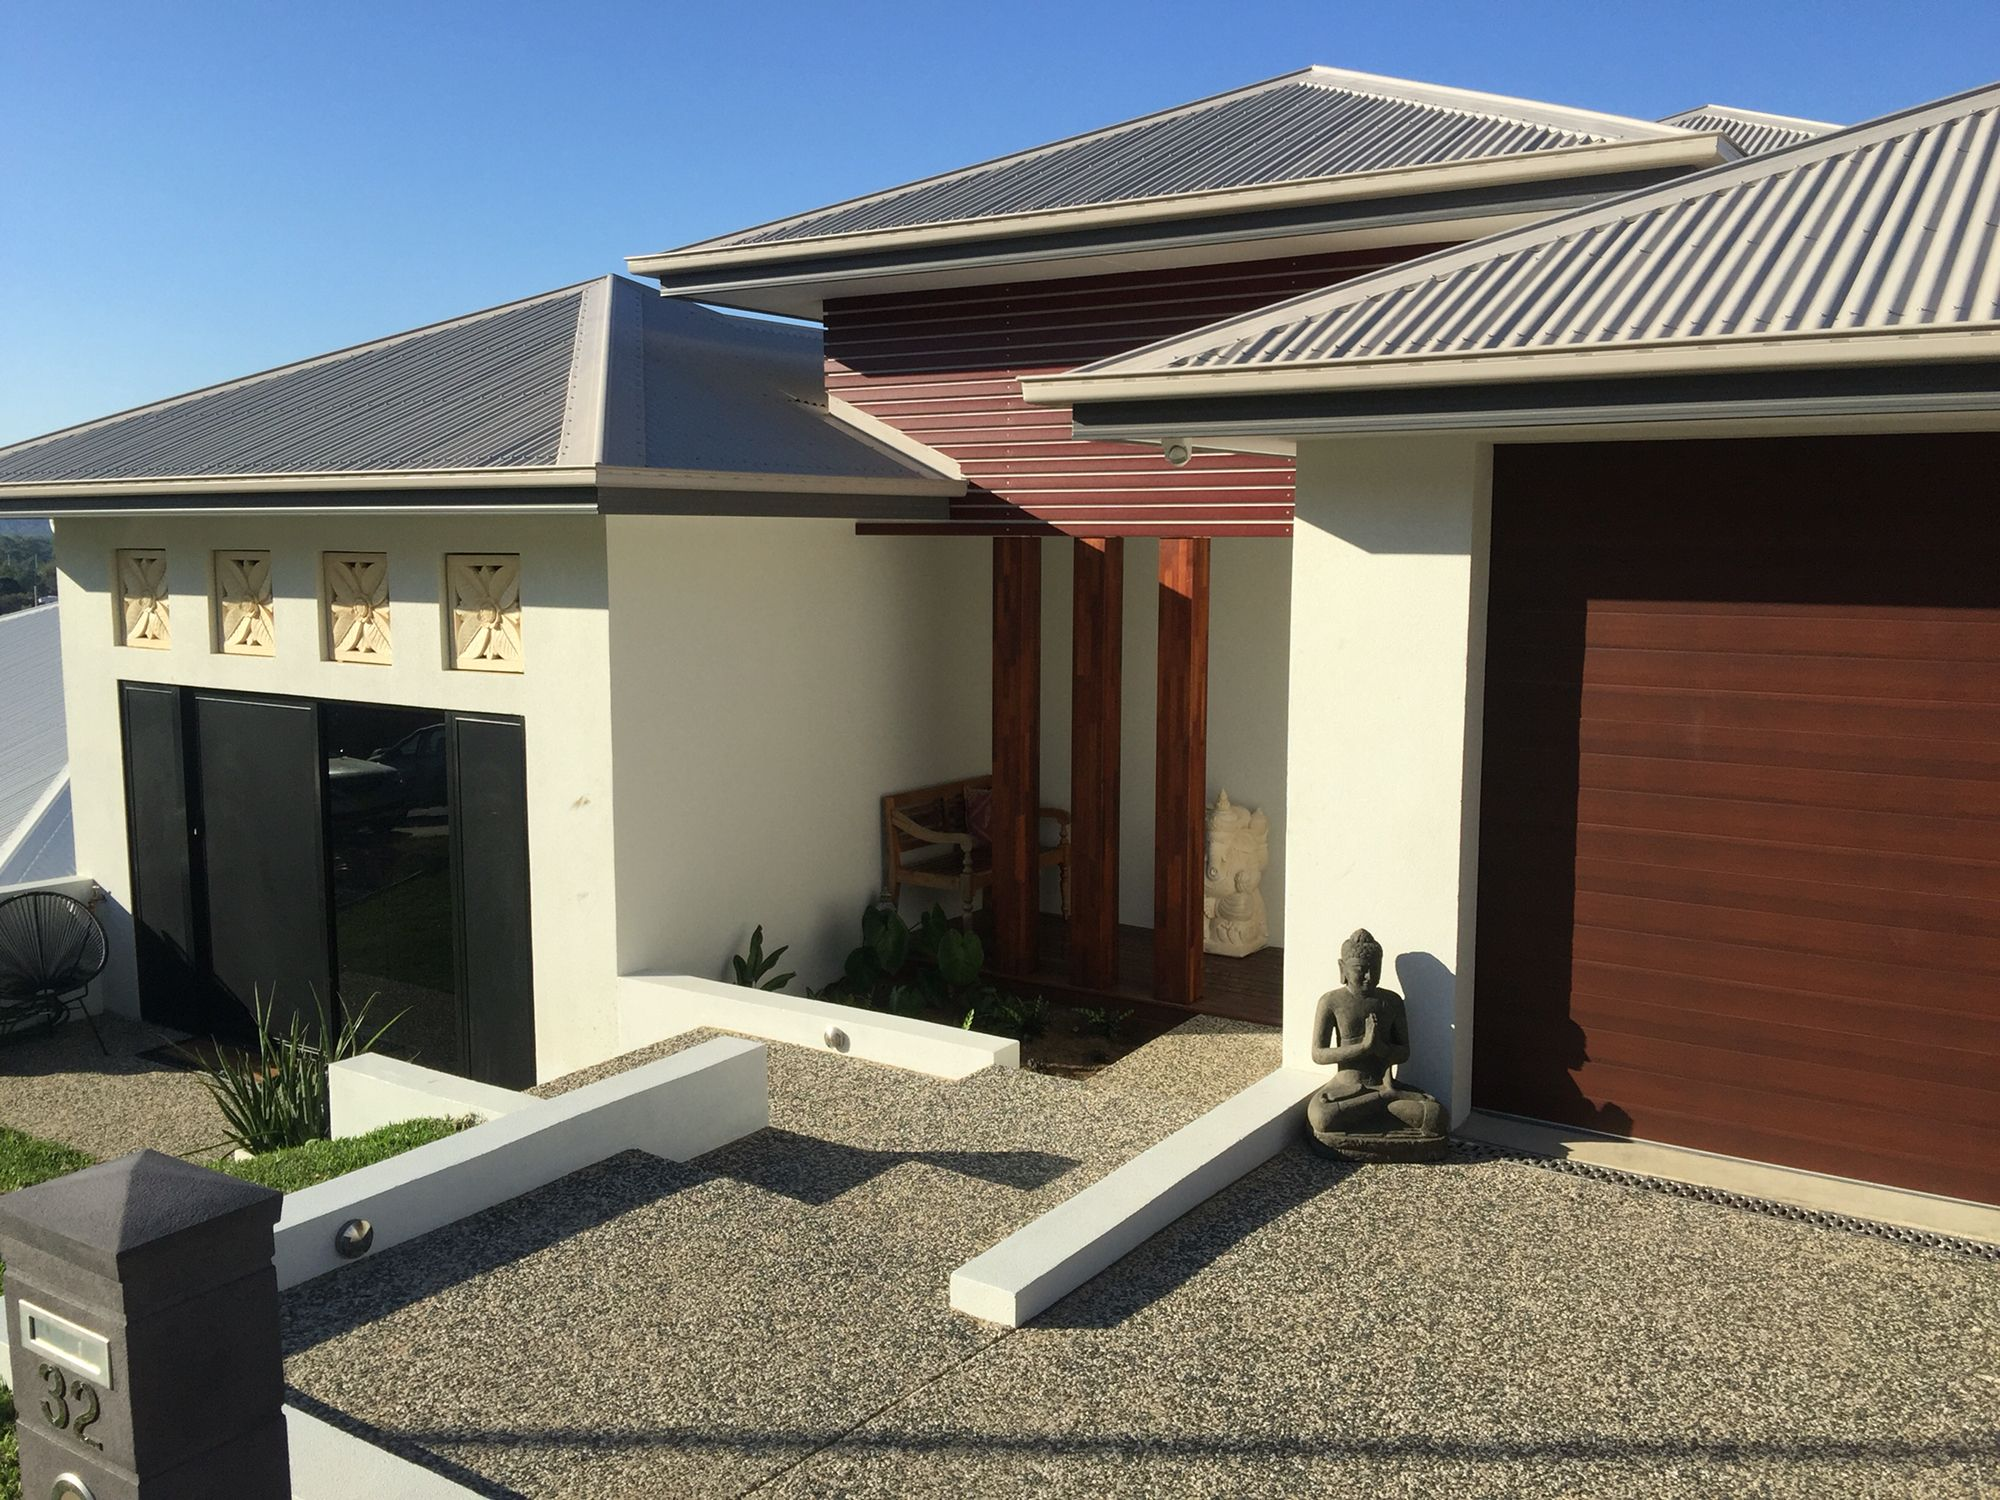 Colorbond roofing colours pictures to pin on pinterest - House Colours Colorbond Roof Gutters Dune Facias Basalt Exterior Walls Surfmist Garage